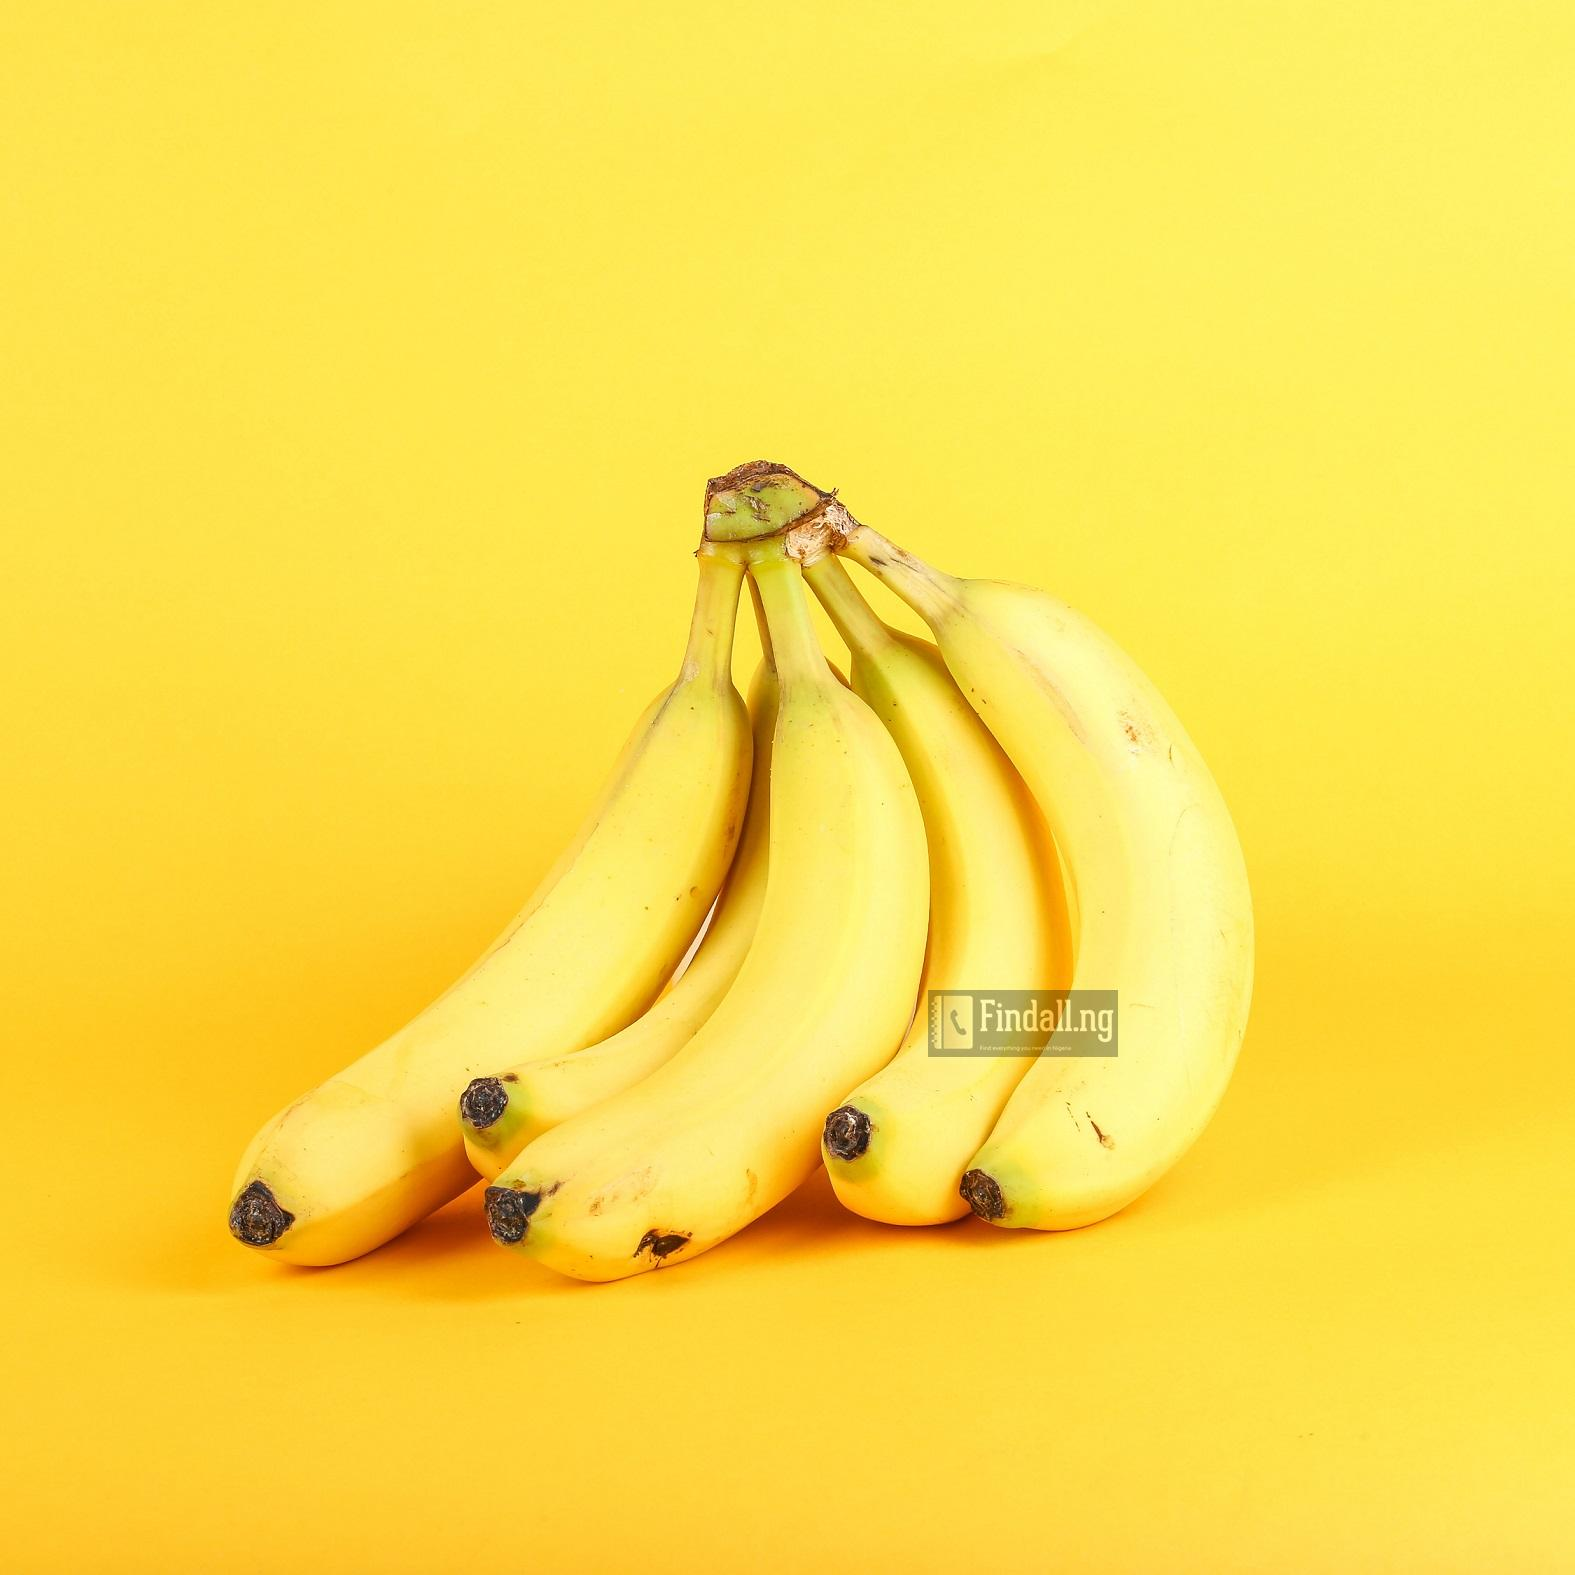 6 Health Benefits of Banana You Need to Know